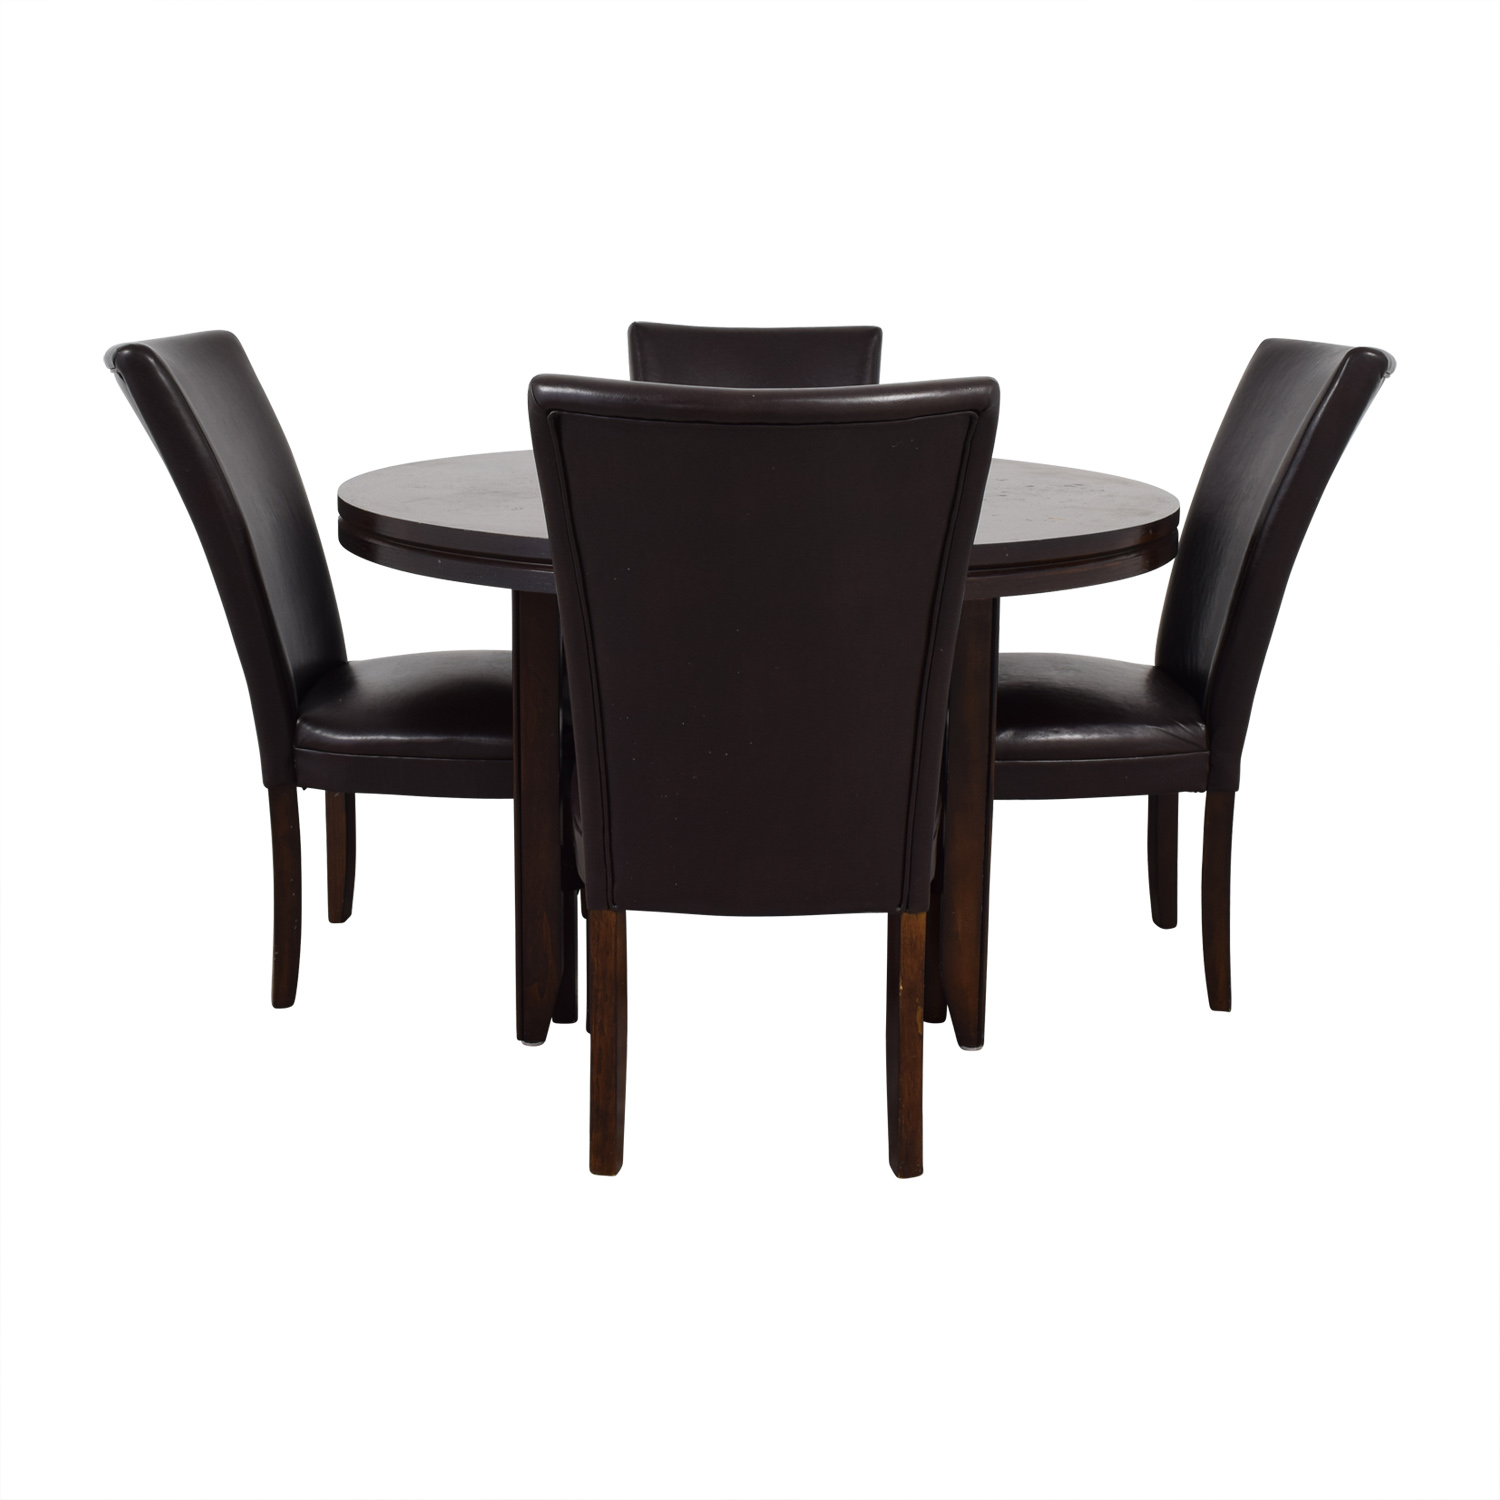 Round Wood Dining Table with Black Leather Chairs discount